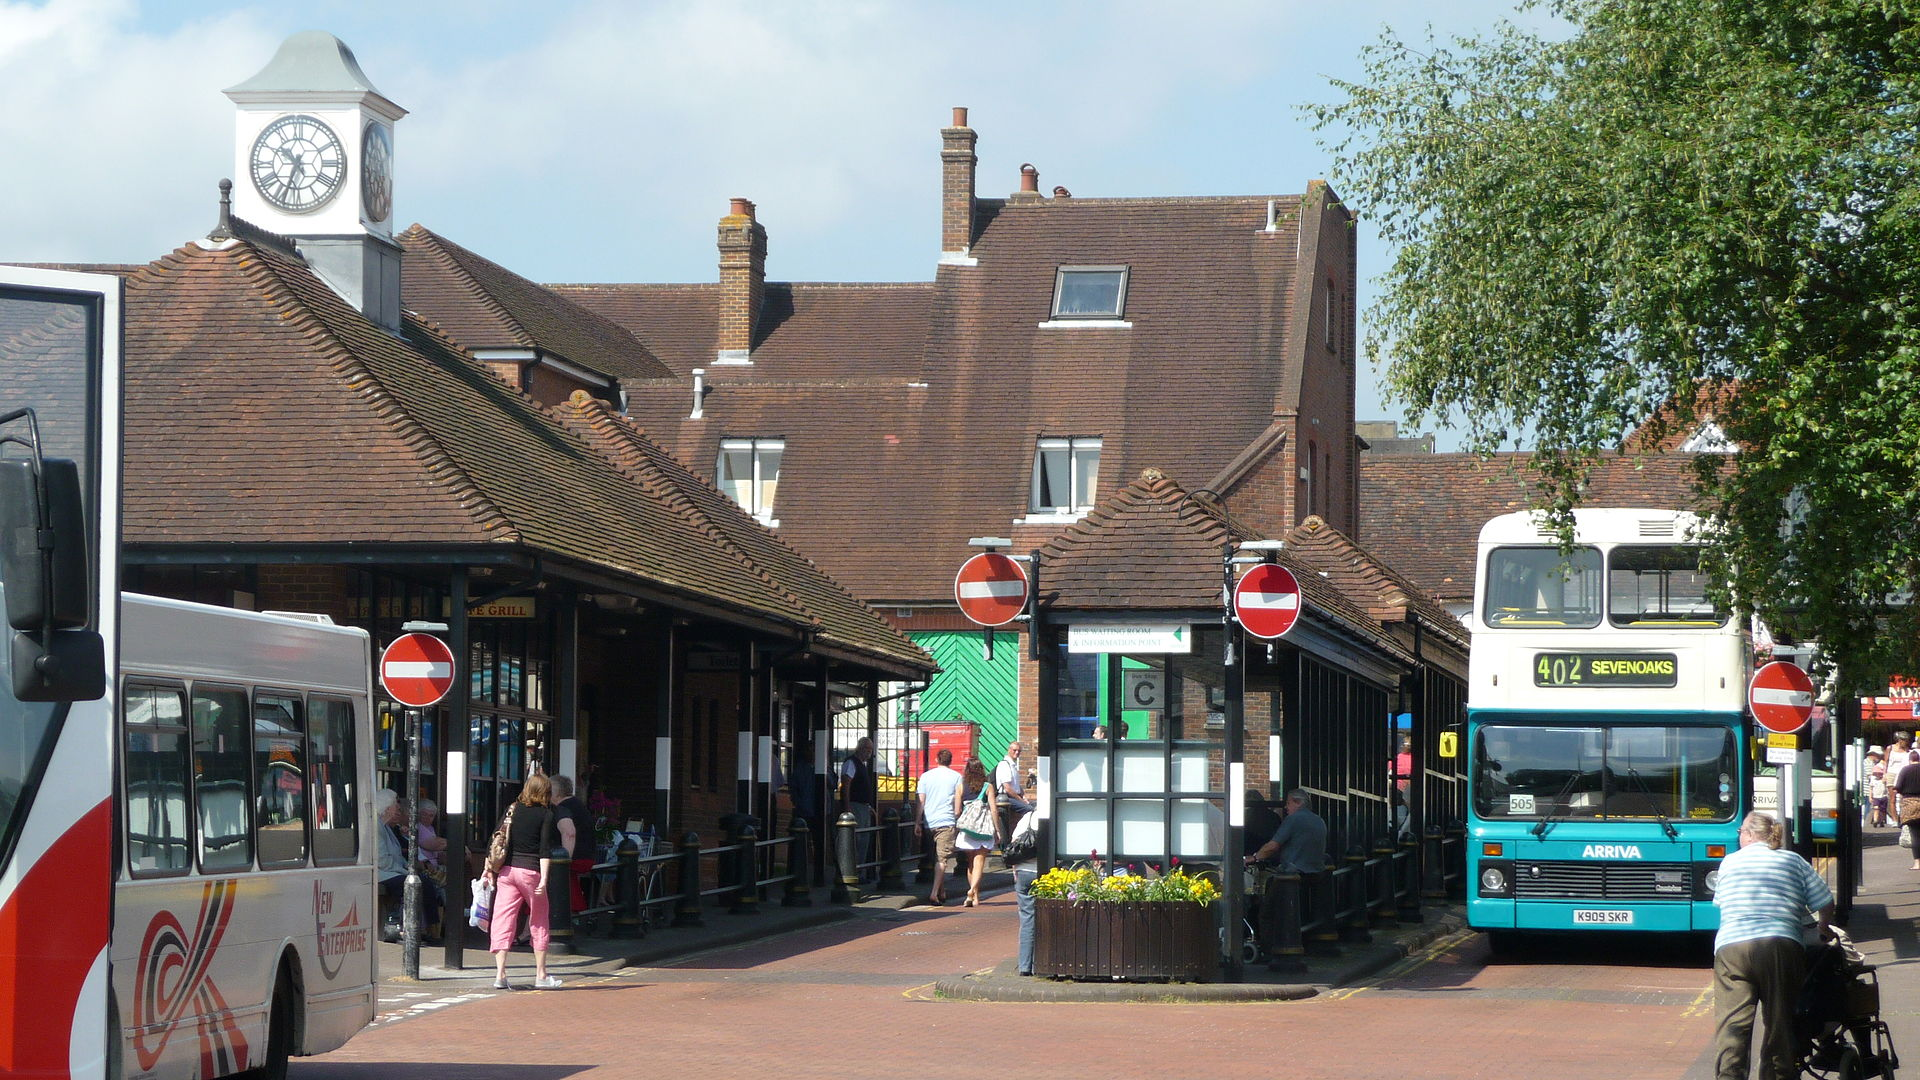 Sevenoaks Bus Station